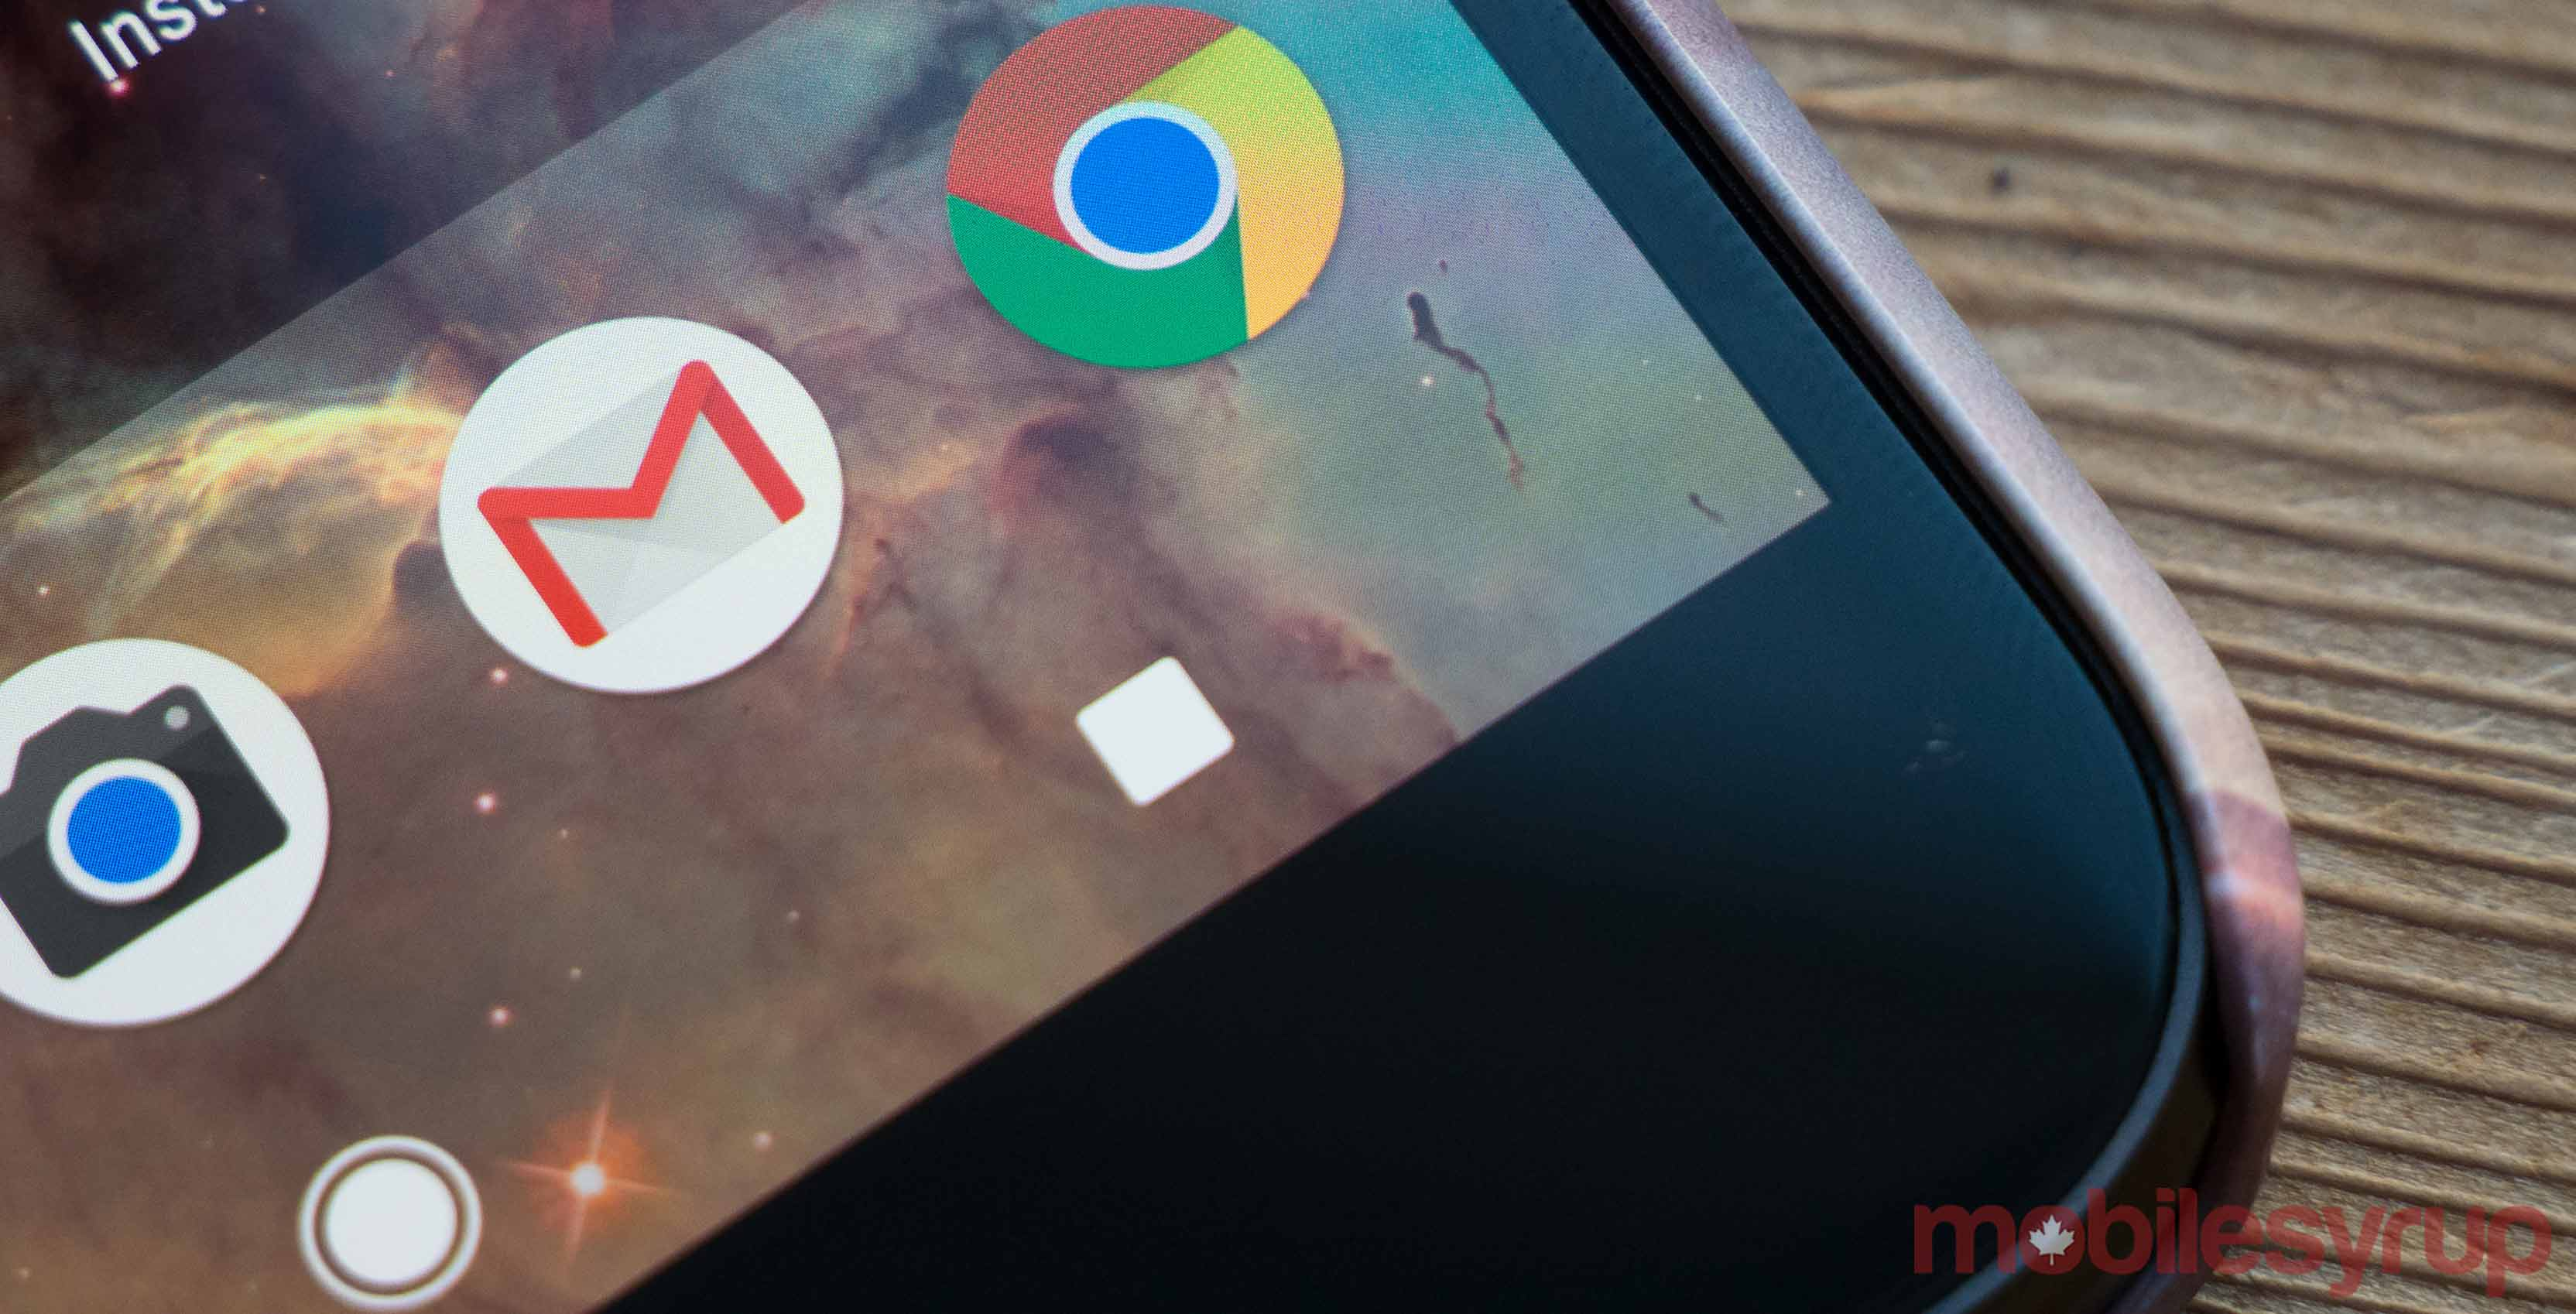 An image showing the camera, Gmail, and Chrome apps